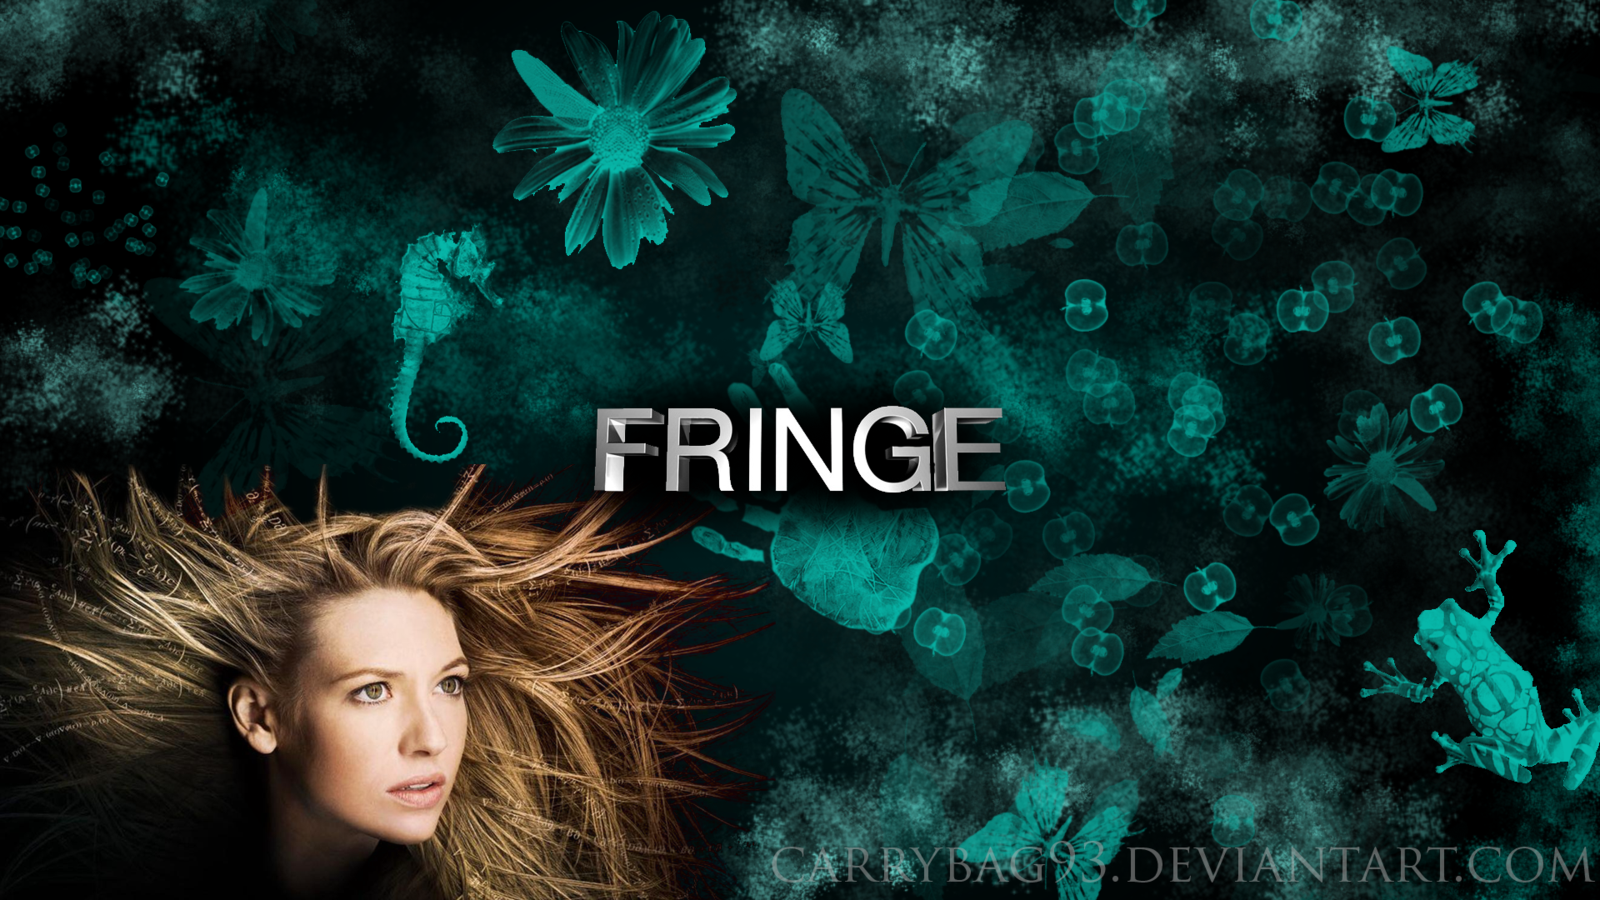 wallpapers hd 530798 fringe wallpapers season wallshark filesize 1600x900